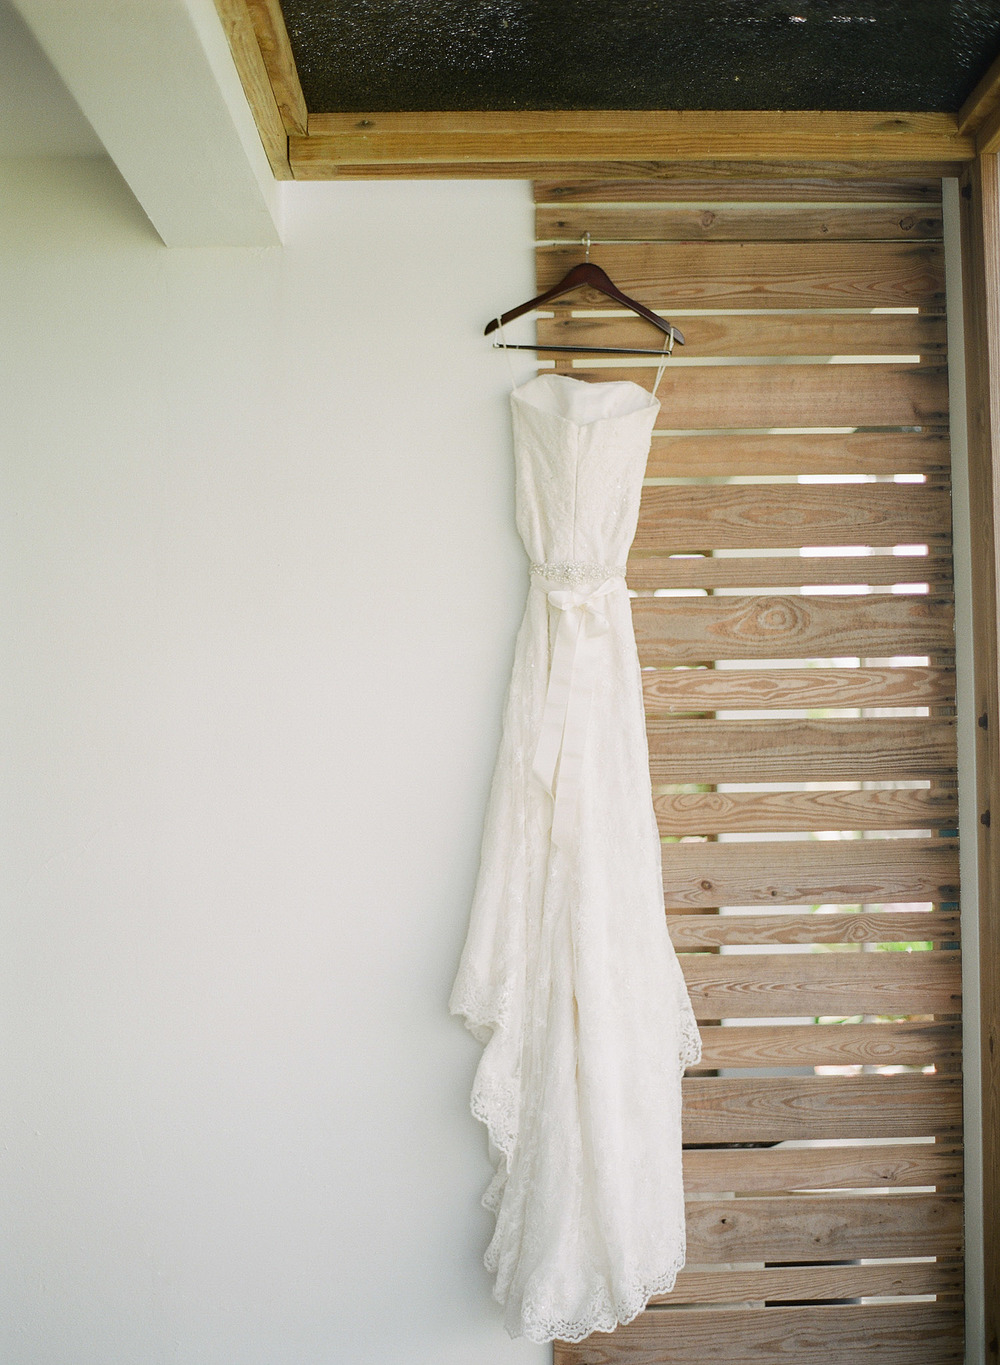 Destination Wedding photographer, Lexia Frank, photographs this destination wedding at the W hotel at Vieques Island puerto rico.